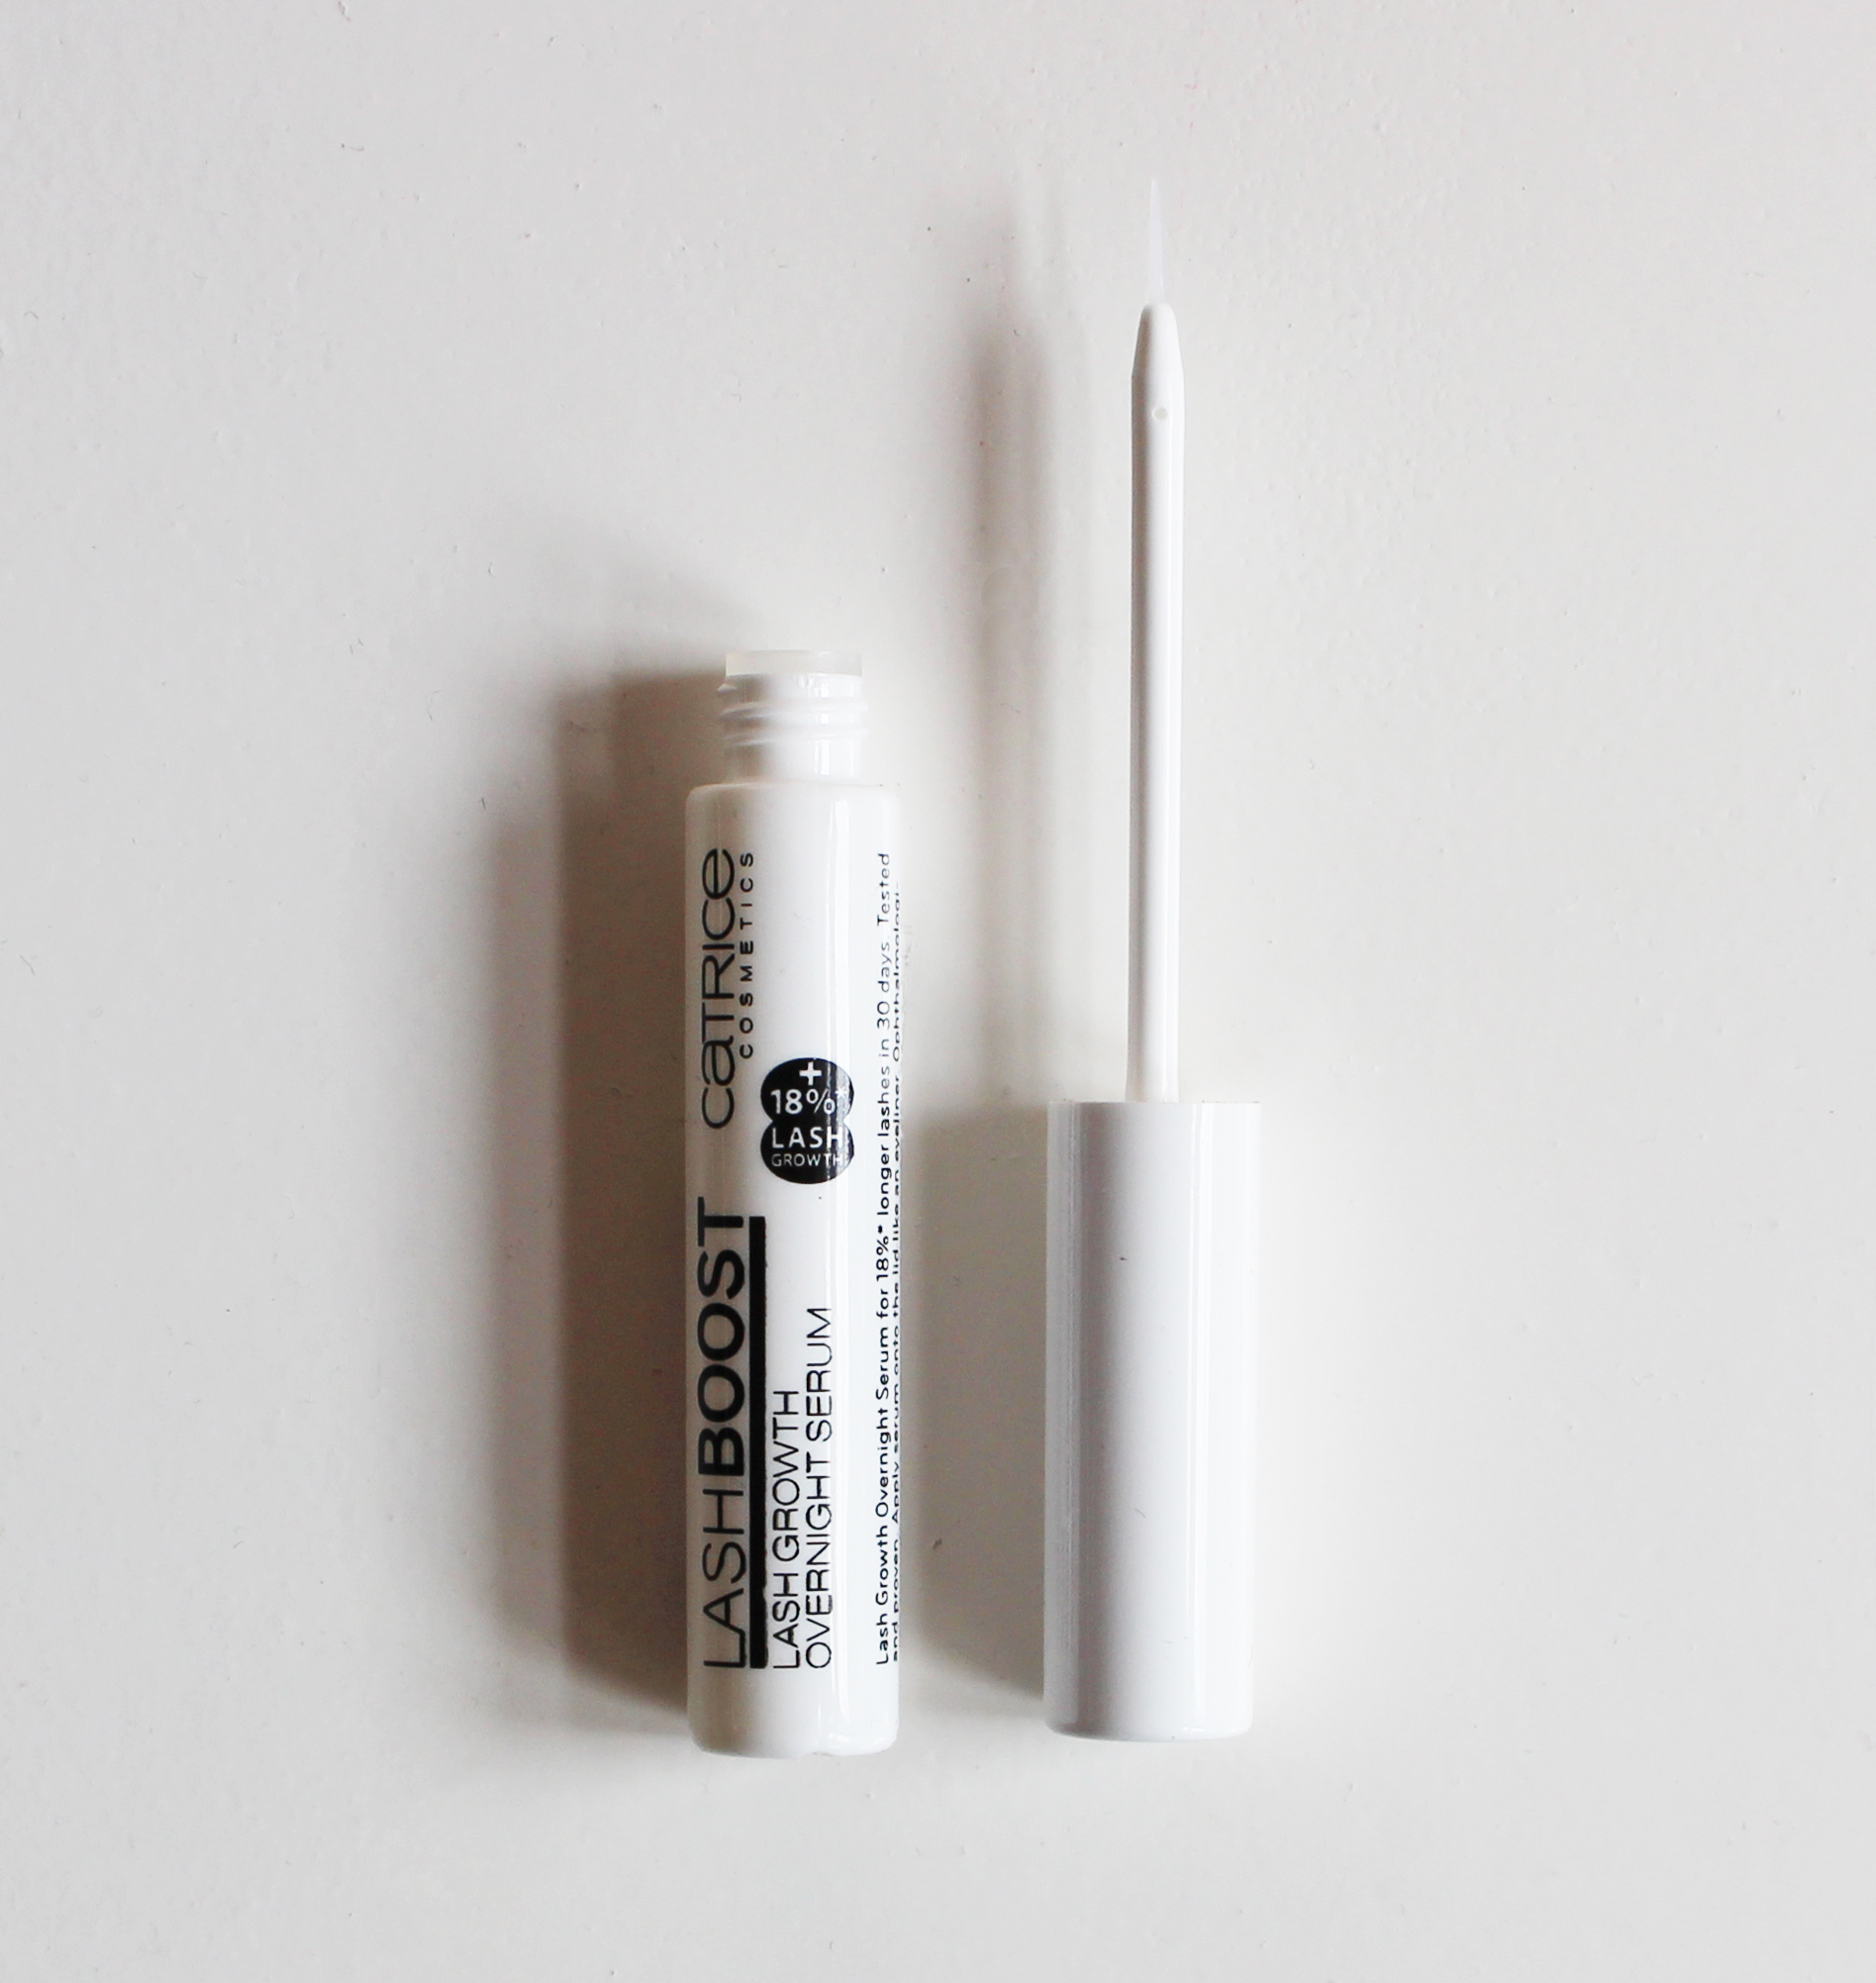 Catrice Lash Boost Growth Overnight Serum Review Day 1